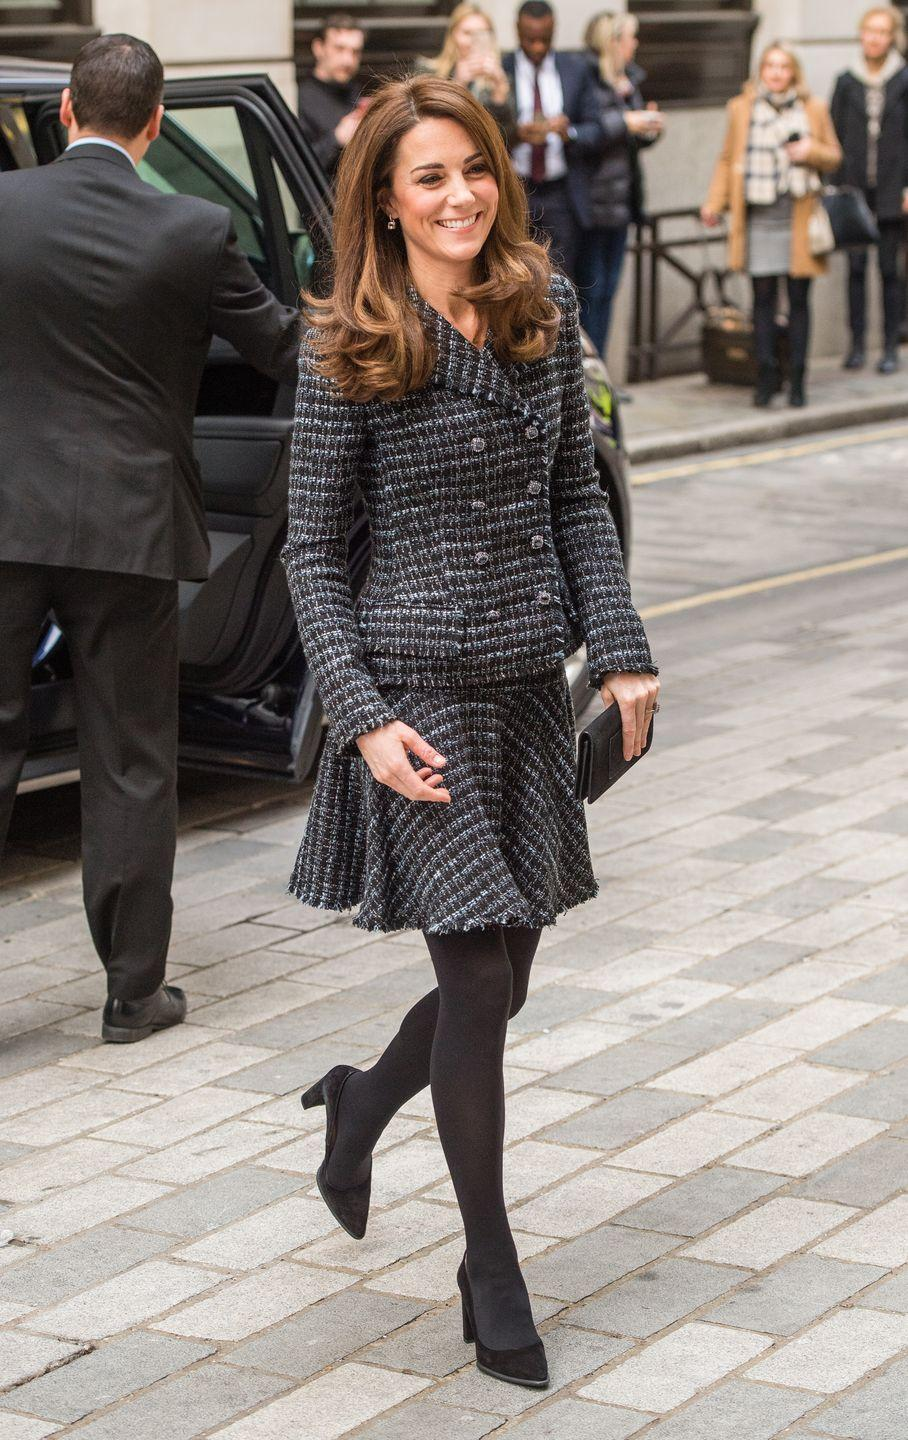 <p>Duchess Kate arrived at the Royal Foundation's 'Mental Health in Education' Conference wearing a dark tweed skirt suit paired with black tights and pumps. She was also carrying a small black clutch. </p>